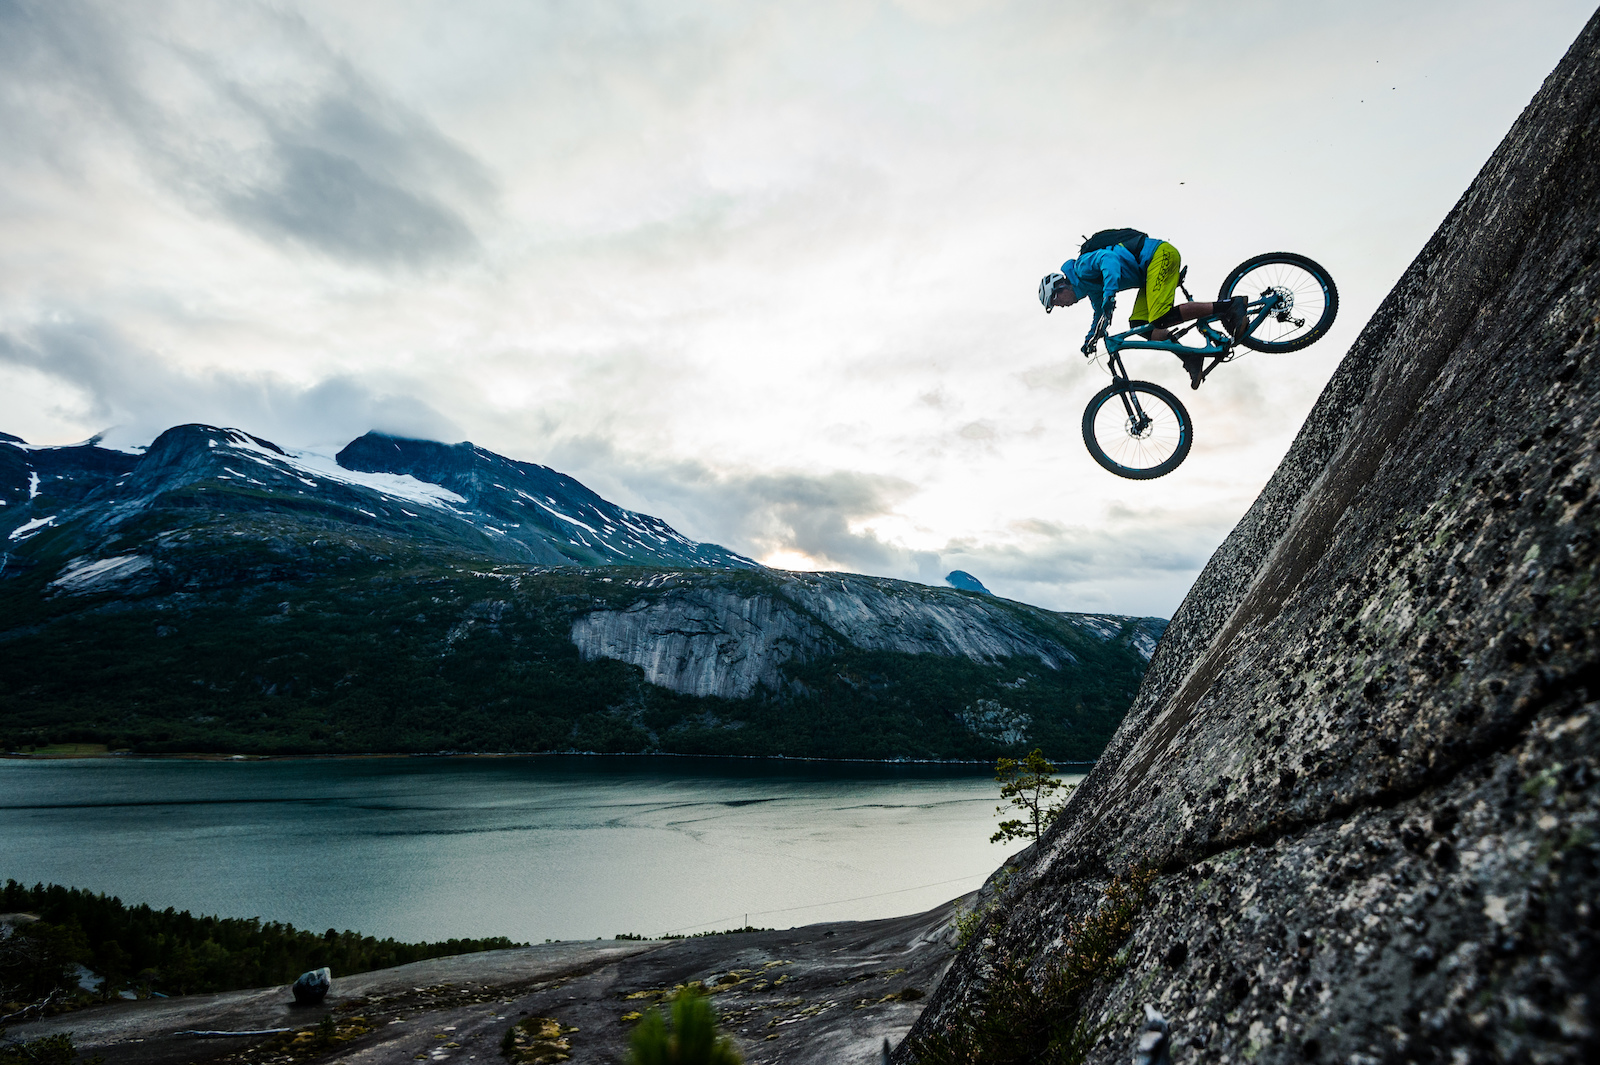 Joey Schulser riding in Skjomen Reinnesfjellet Norway.